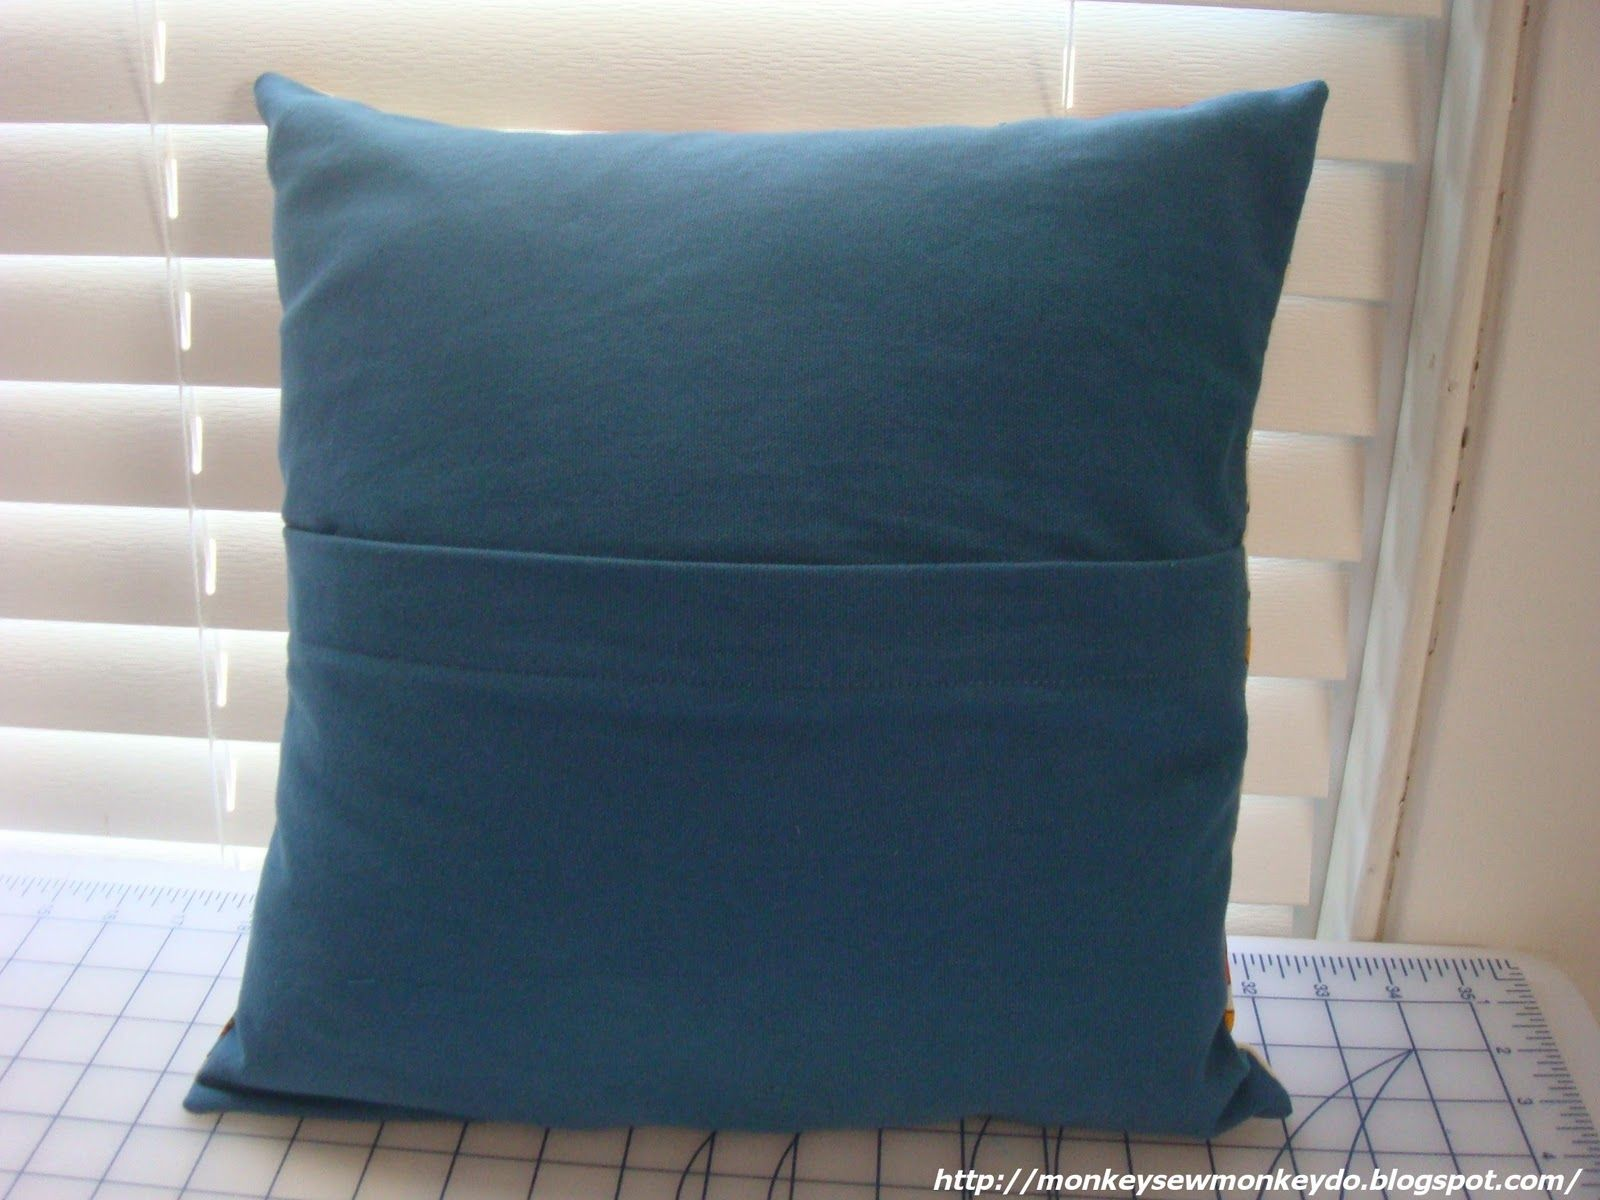 How To Wash Throw Pillows Without Removable Cover Monkey Sew Monkey Do Quick And Easy Removable Pillow Covers